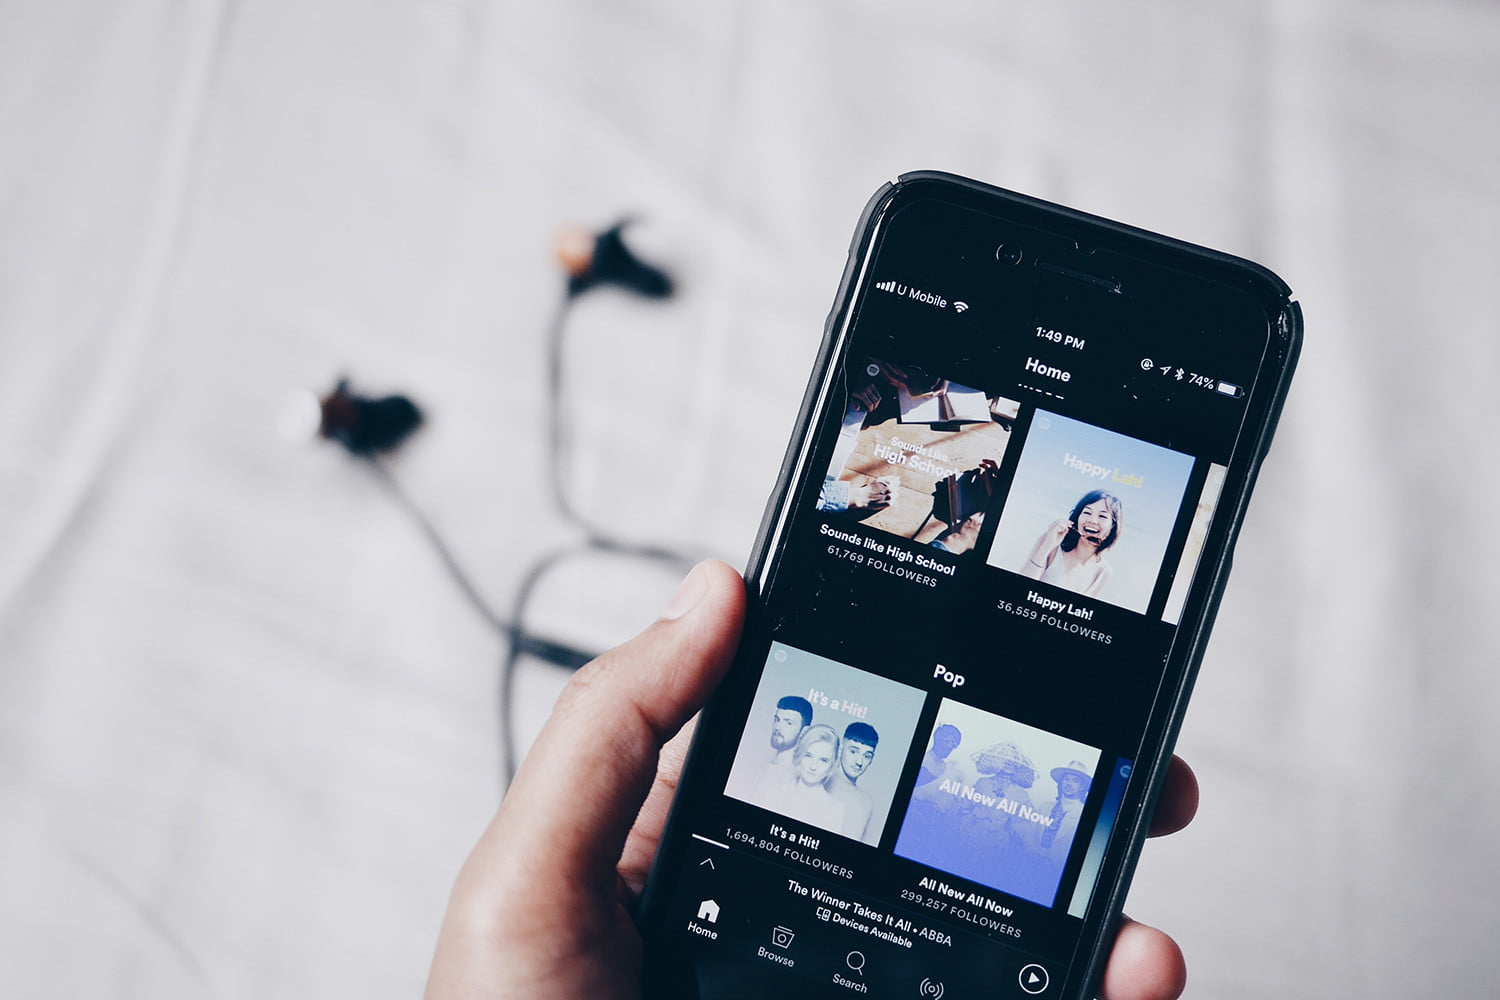 You May Soon Be Able to Listen to Your Own Music on Spotify Android